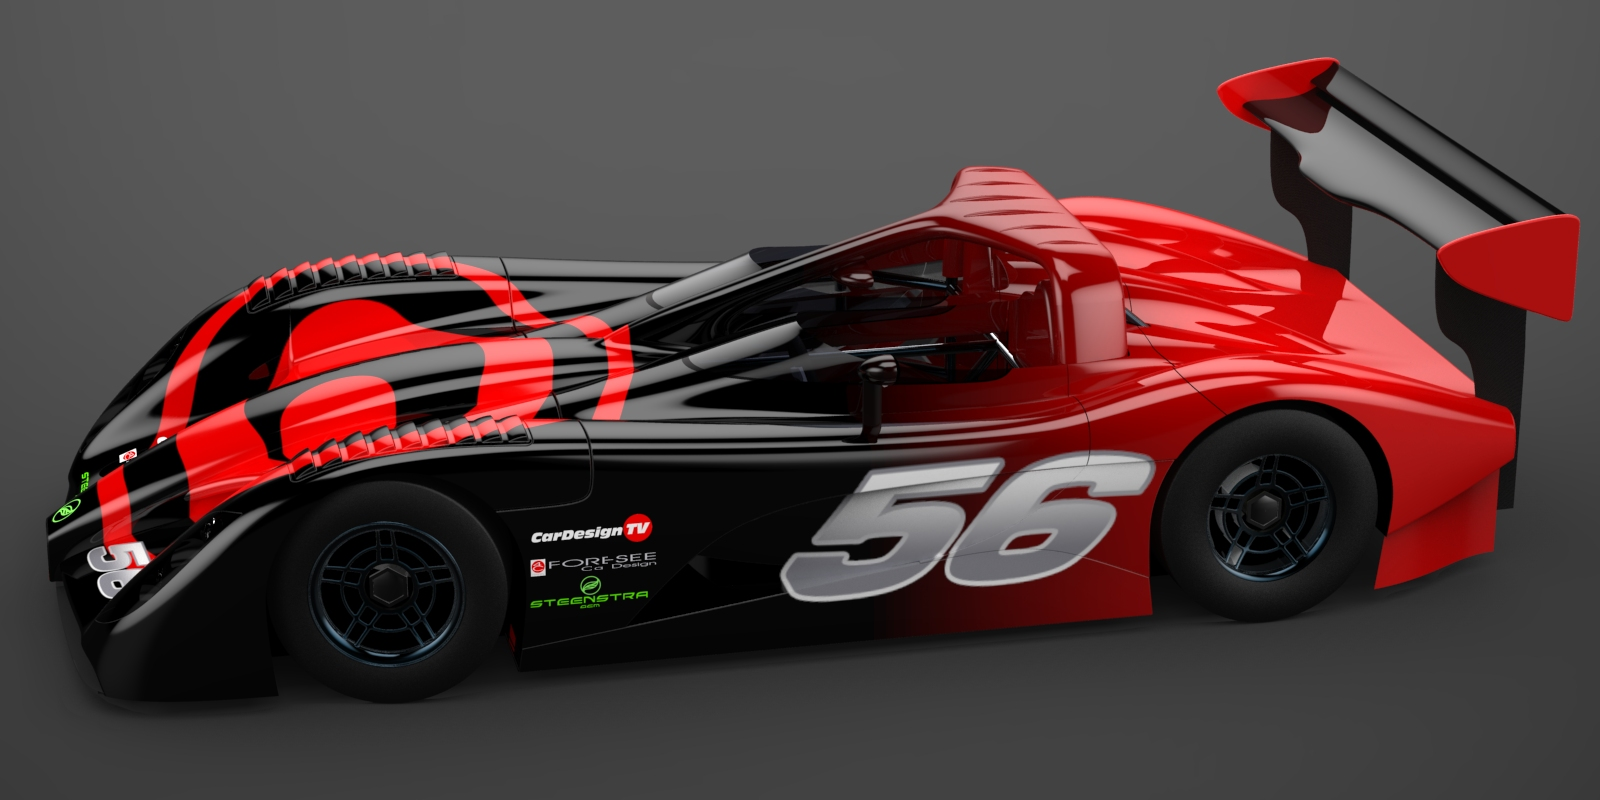 Designing A Safe And Affordable Endurance Race Car For Amateurs - Affordable safe sports cars